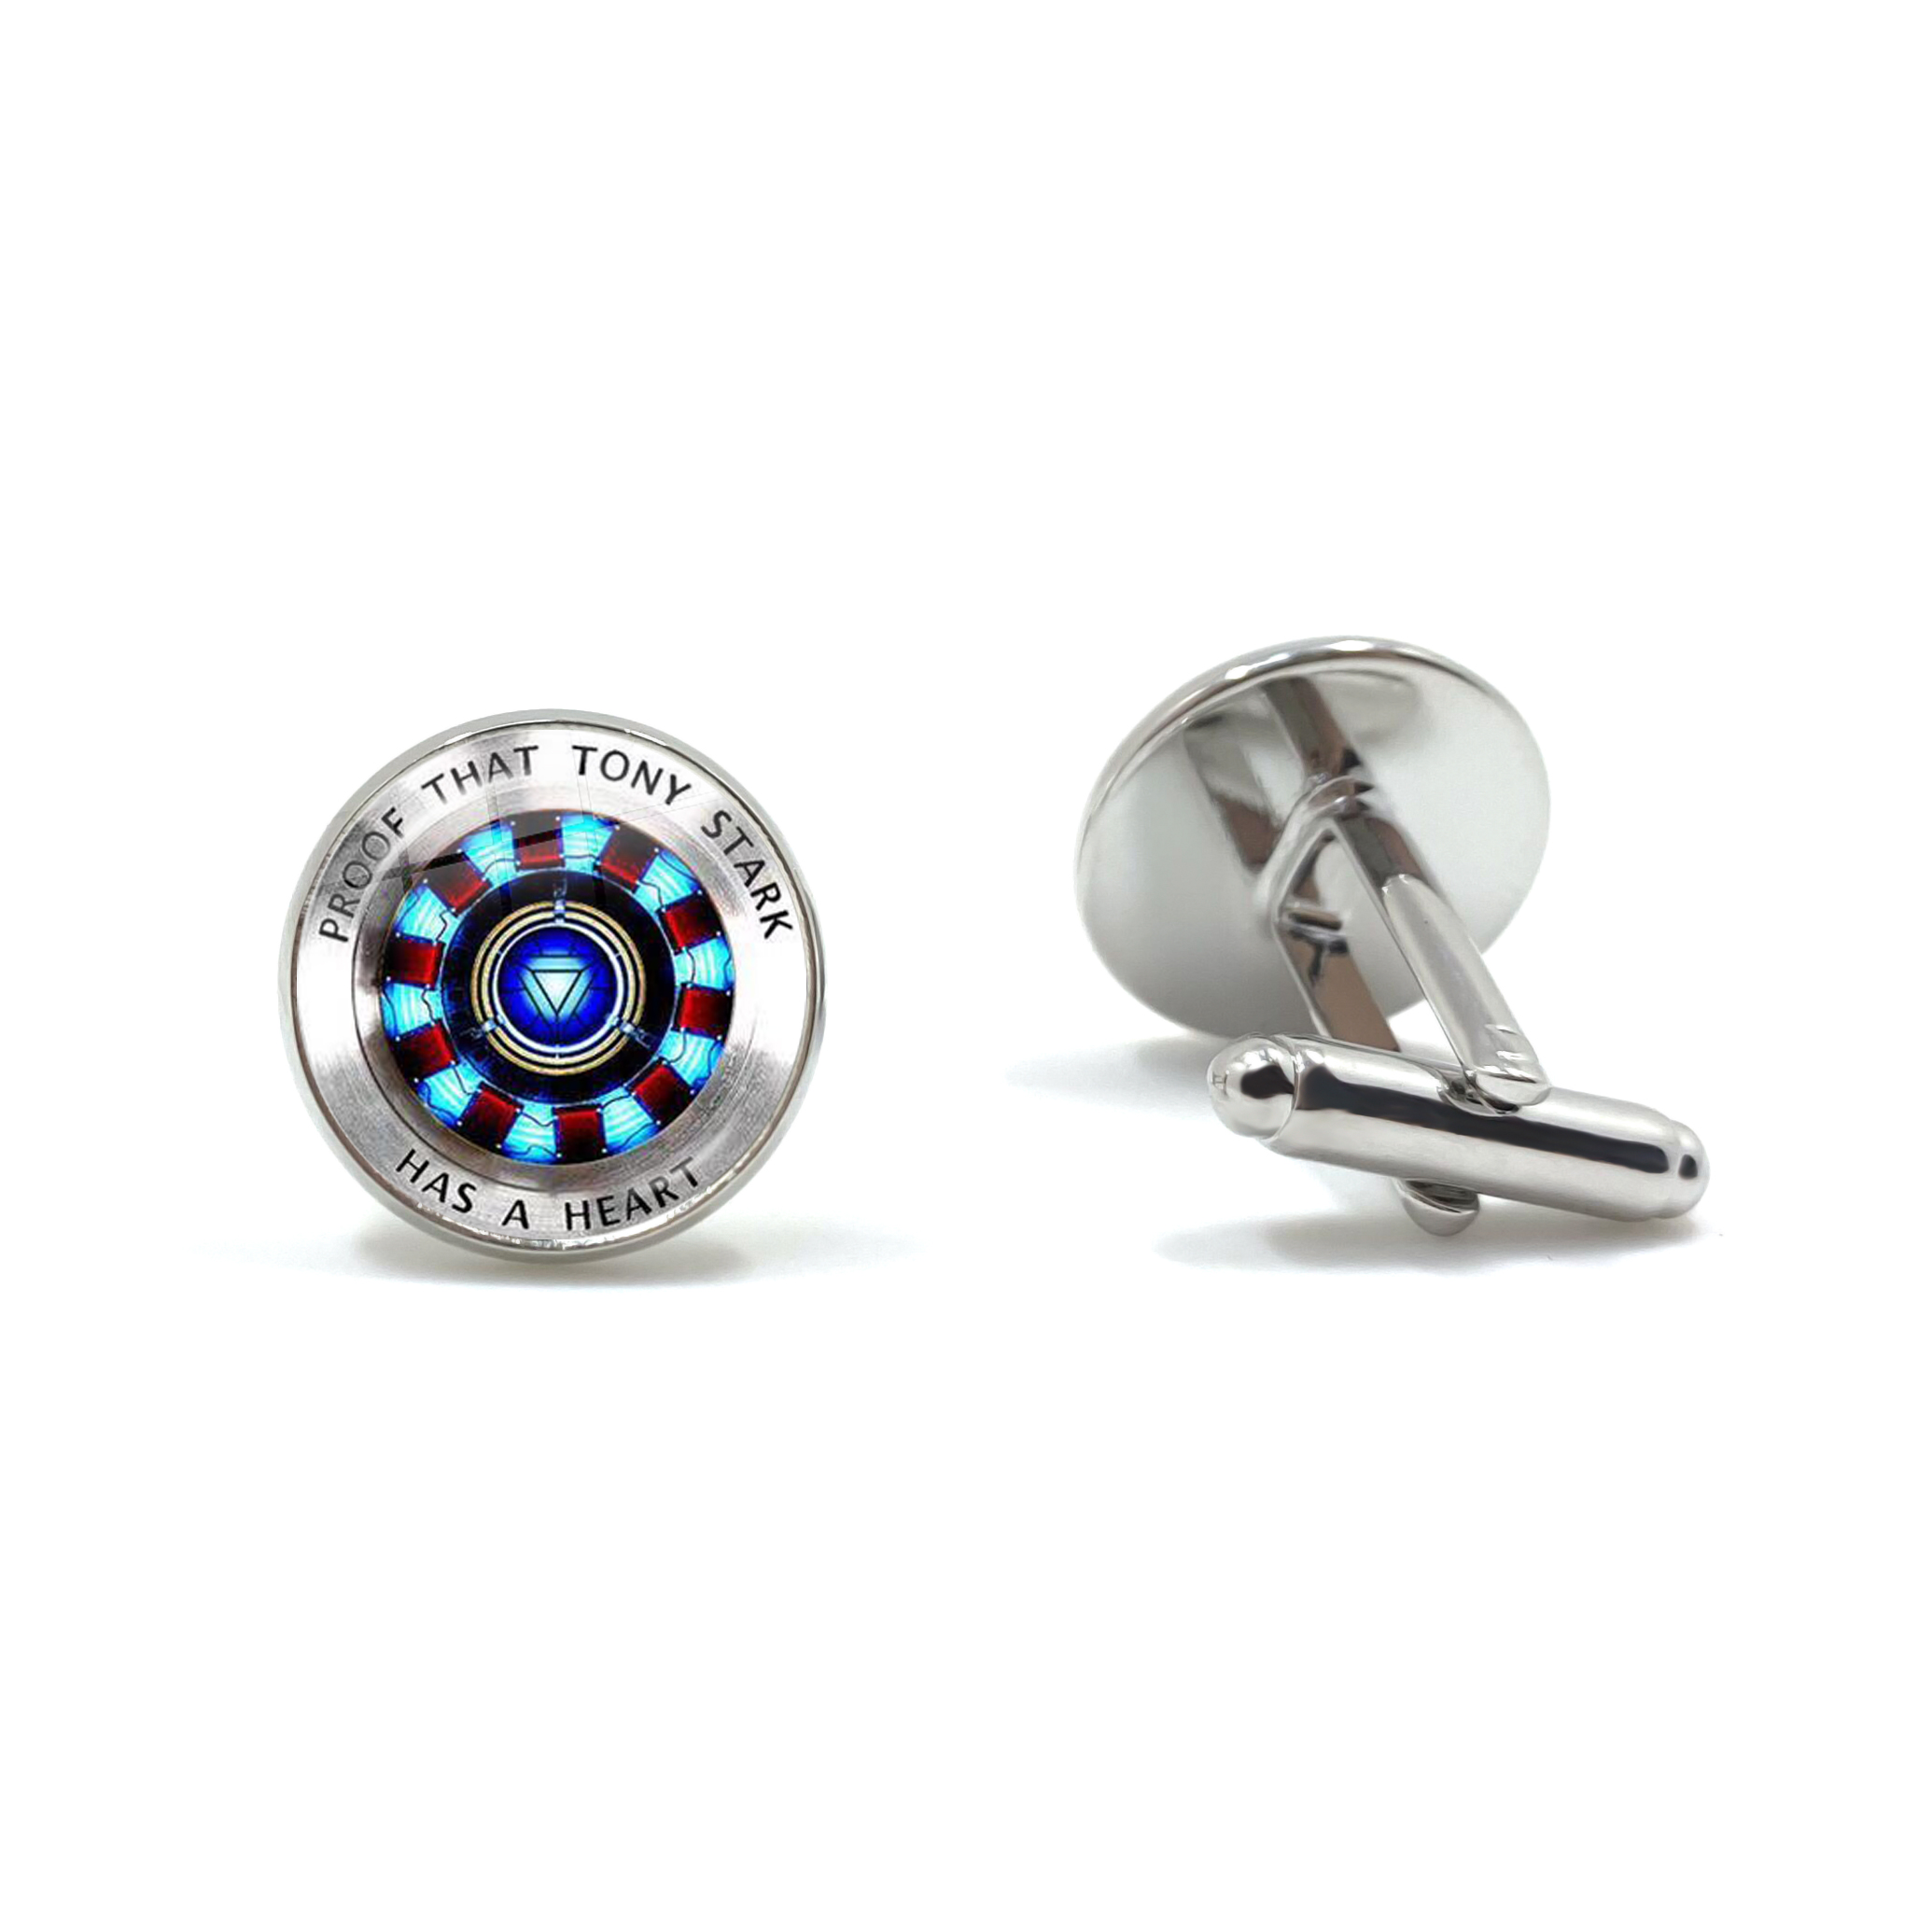 Glass Cabochon Cufflinks Marvel Iron Man Tony Stark Arc Reactor Cuff Buttons The Avengers 4 Endgame Quantum Realm Film Souvenir